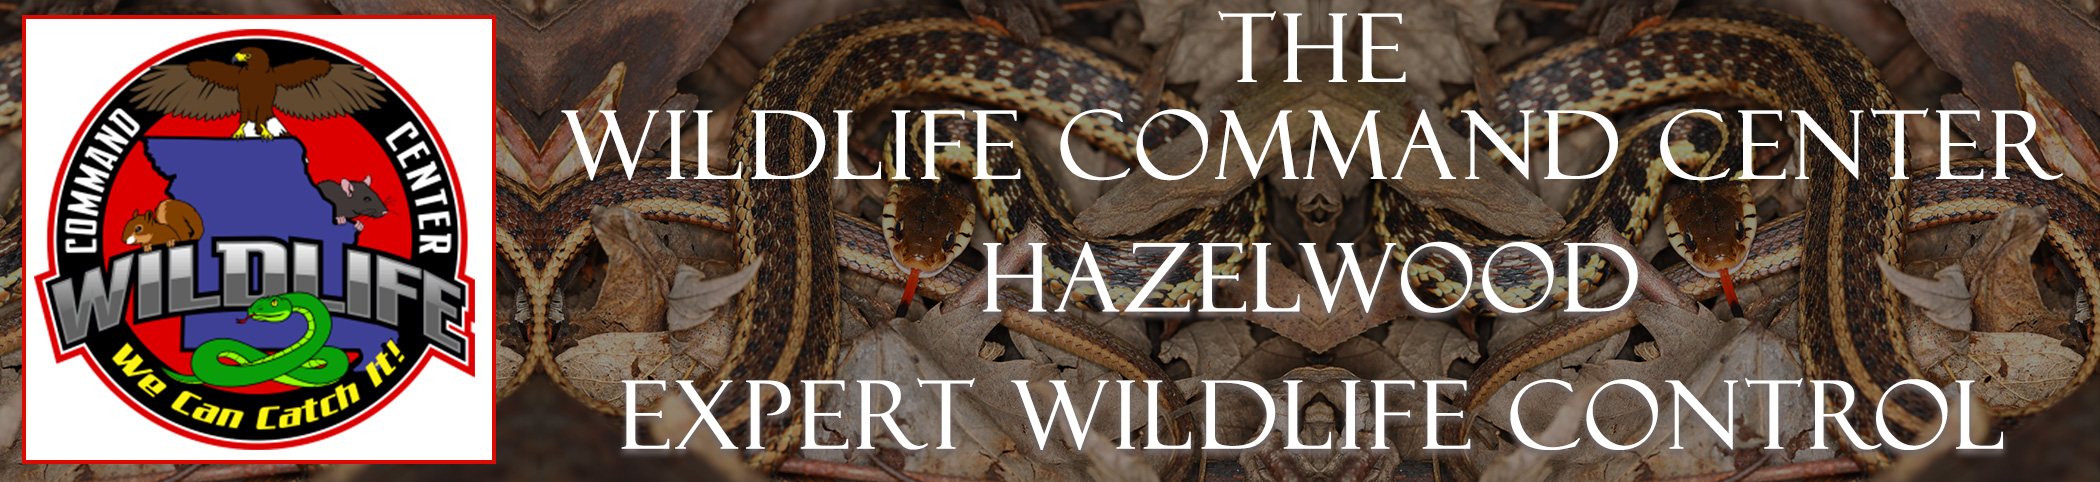 The Wildlife Command Center Hazelwood Missouri Image